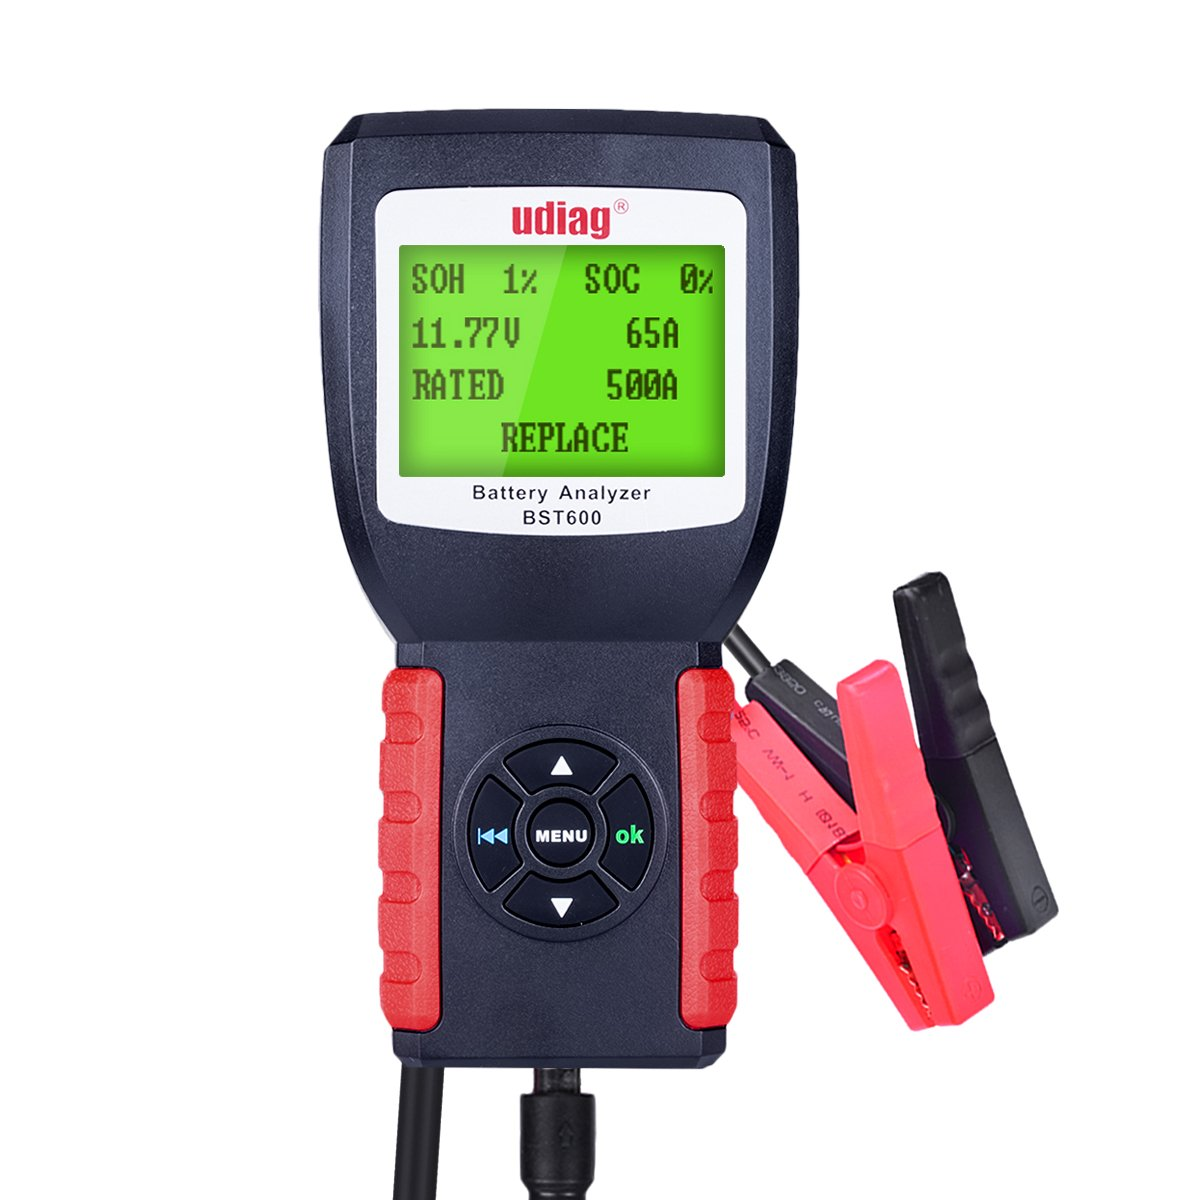 Car Battery Tester, Udiag BST600 Car Battery Analyzer for 12V 100-2000CCA 30-200AH Auto Regular Flooded AGM Flat Plate Gel Batteries Starting and Charging System Red